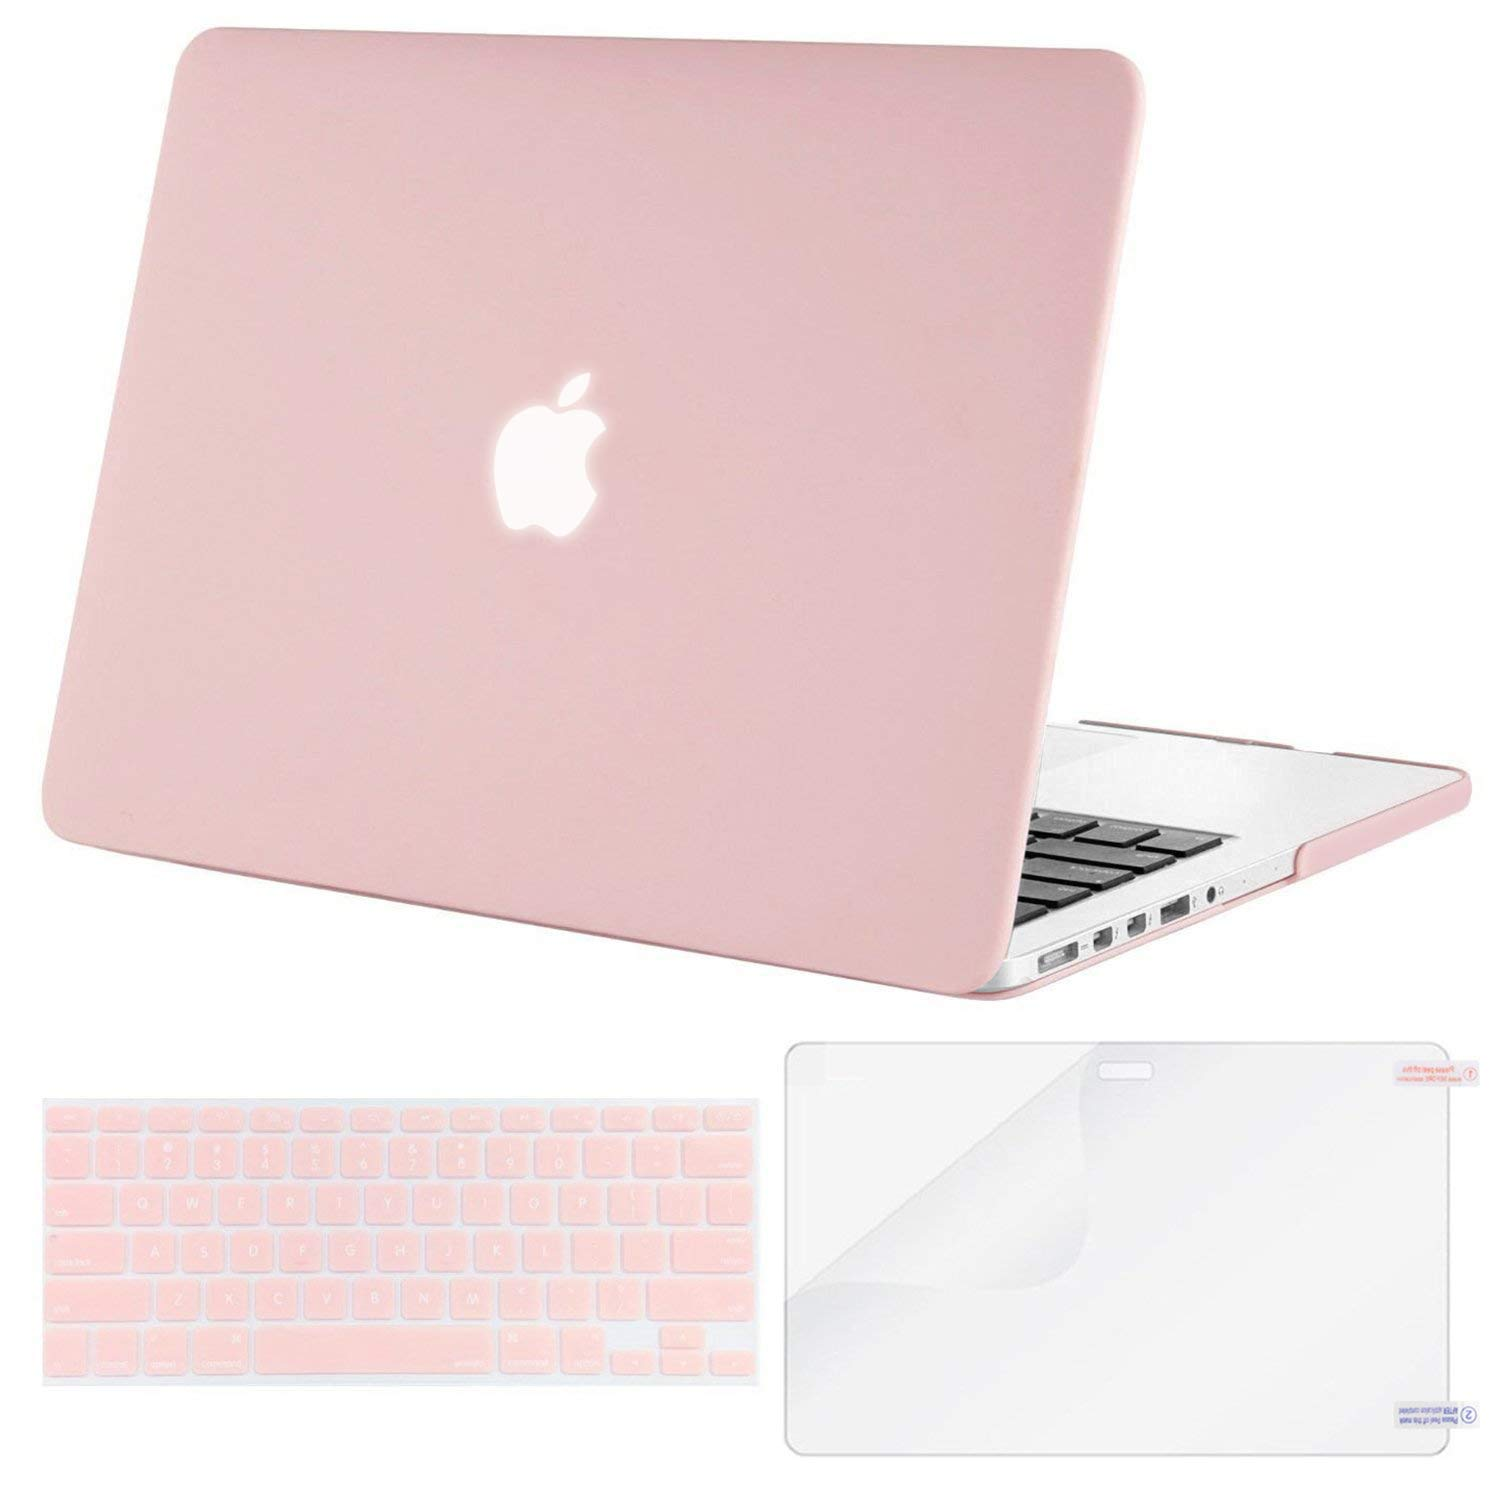 MOSISO Case Only Compatible with Older Version MacBook Pro 15 inch Model A1398 with Retina Display (2015 - end 2012 Release), Plastic Hard Shell & Keyboard Cover & Screen Protector, Rose Quartz